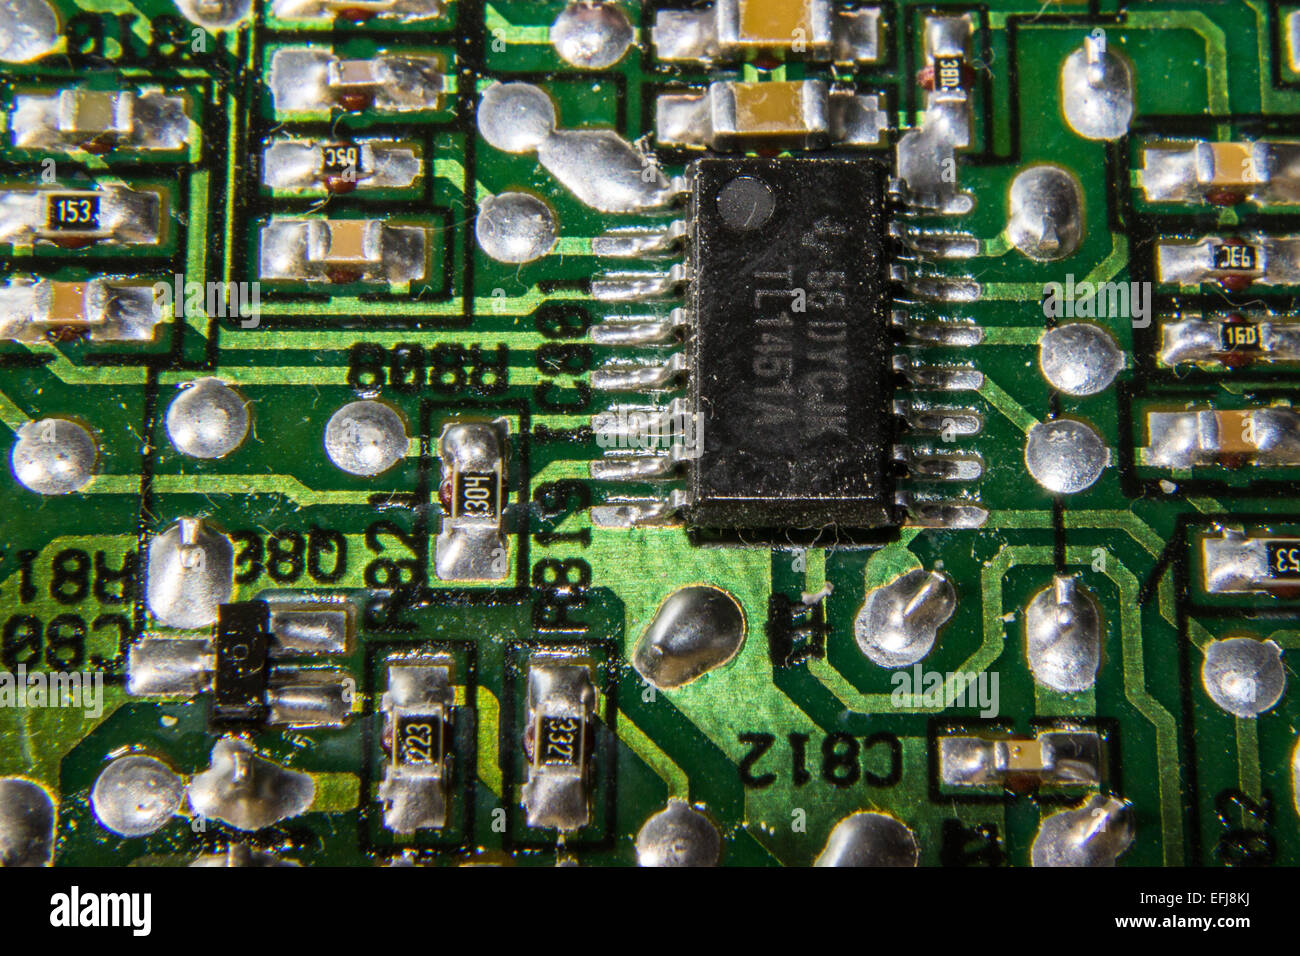 Closeup of a computer chip on a printed circuit board. - Stock Image